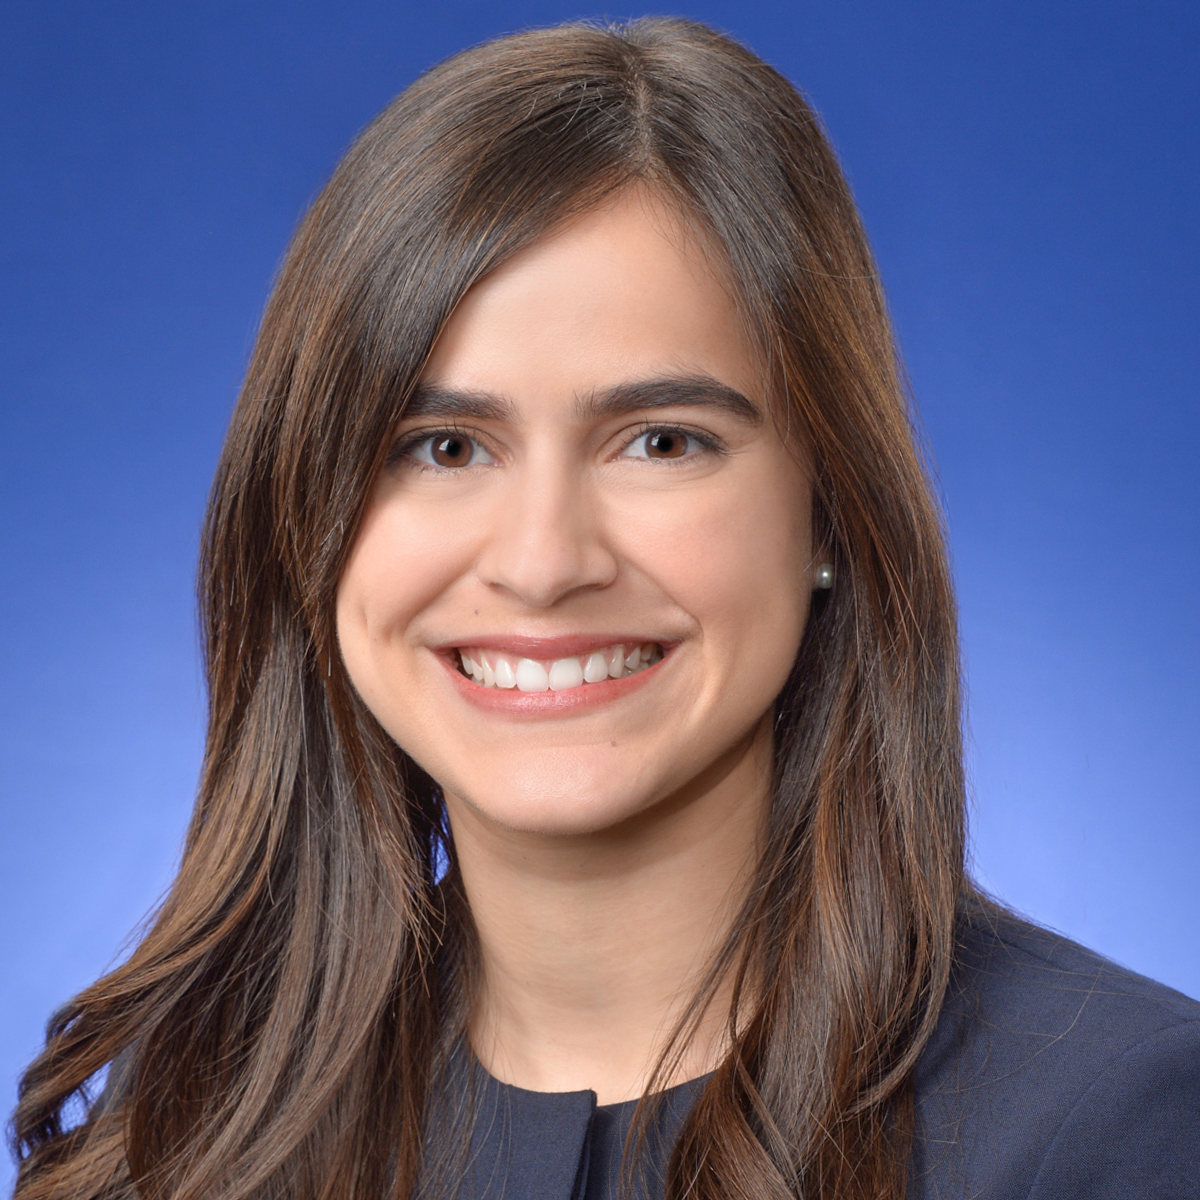 Suzette Diaz, Director, Insulin Access & Affordability at Lilly Diabetes